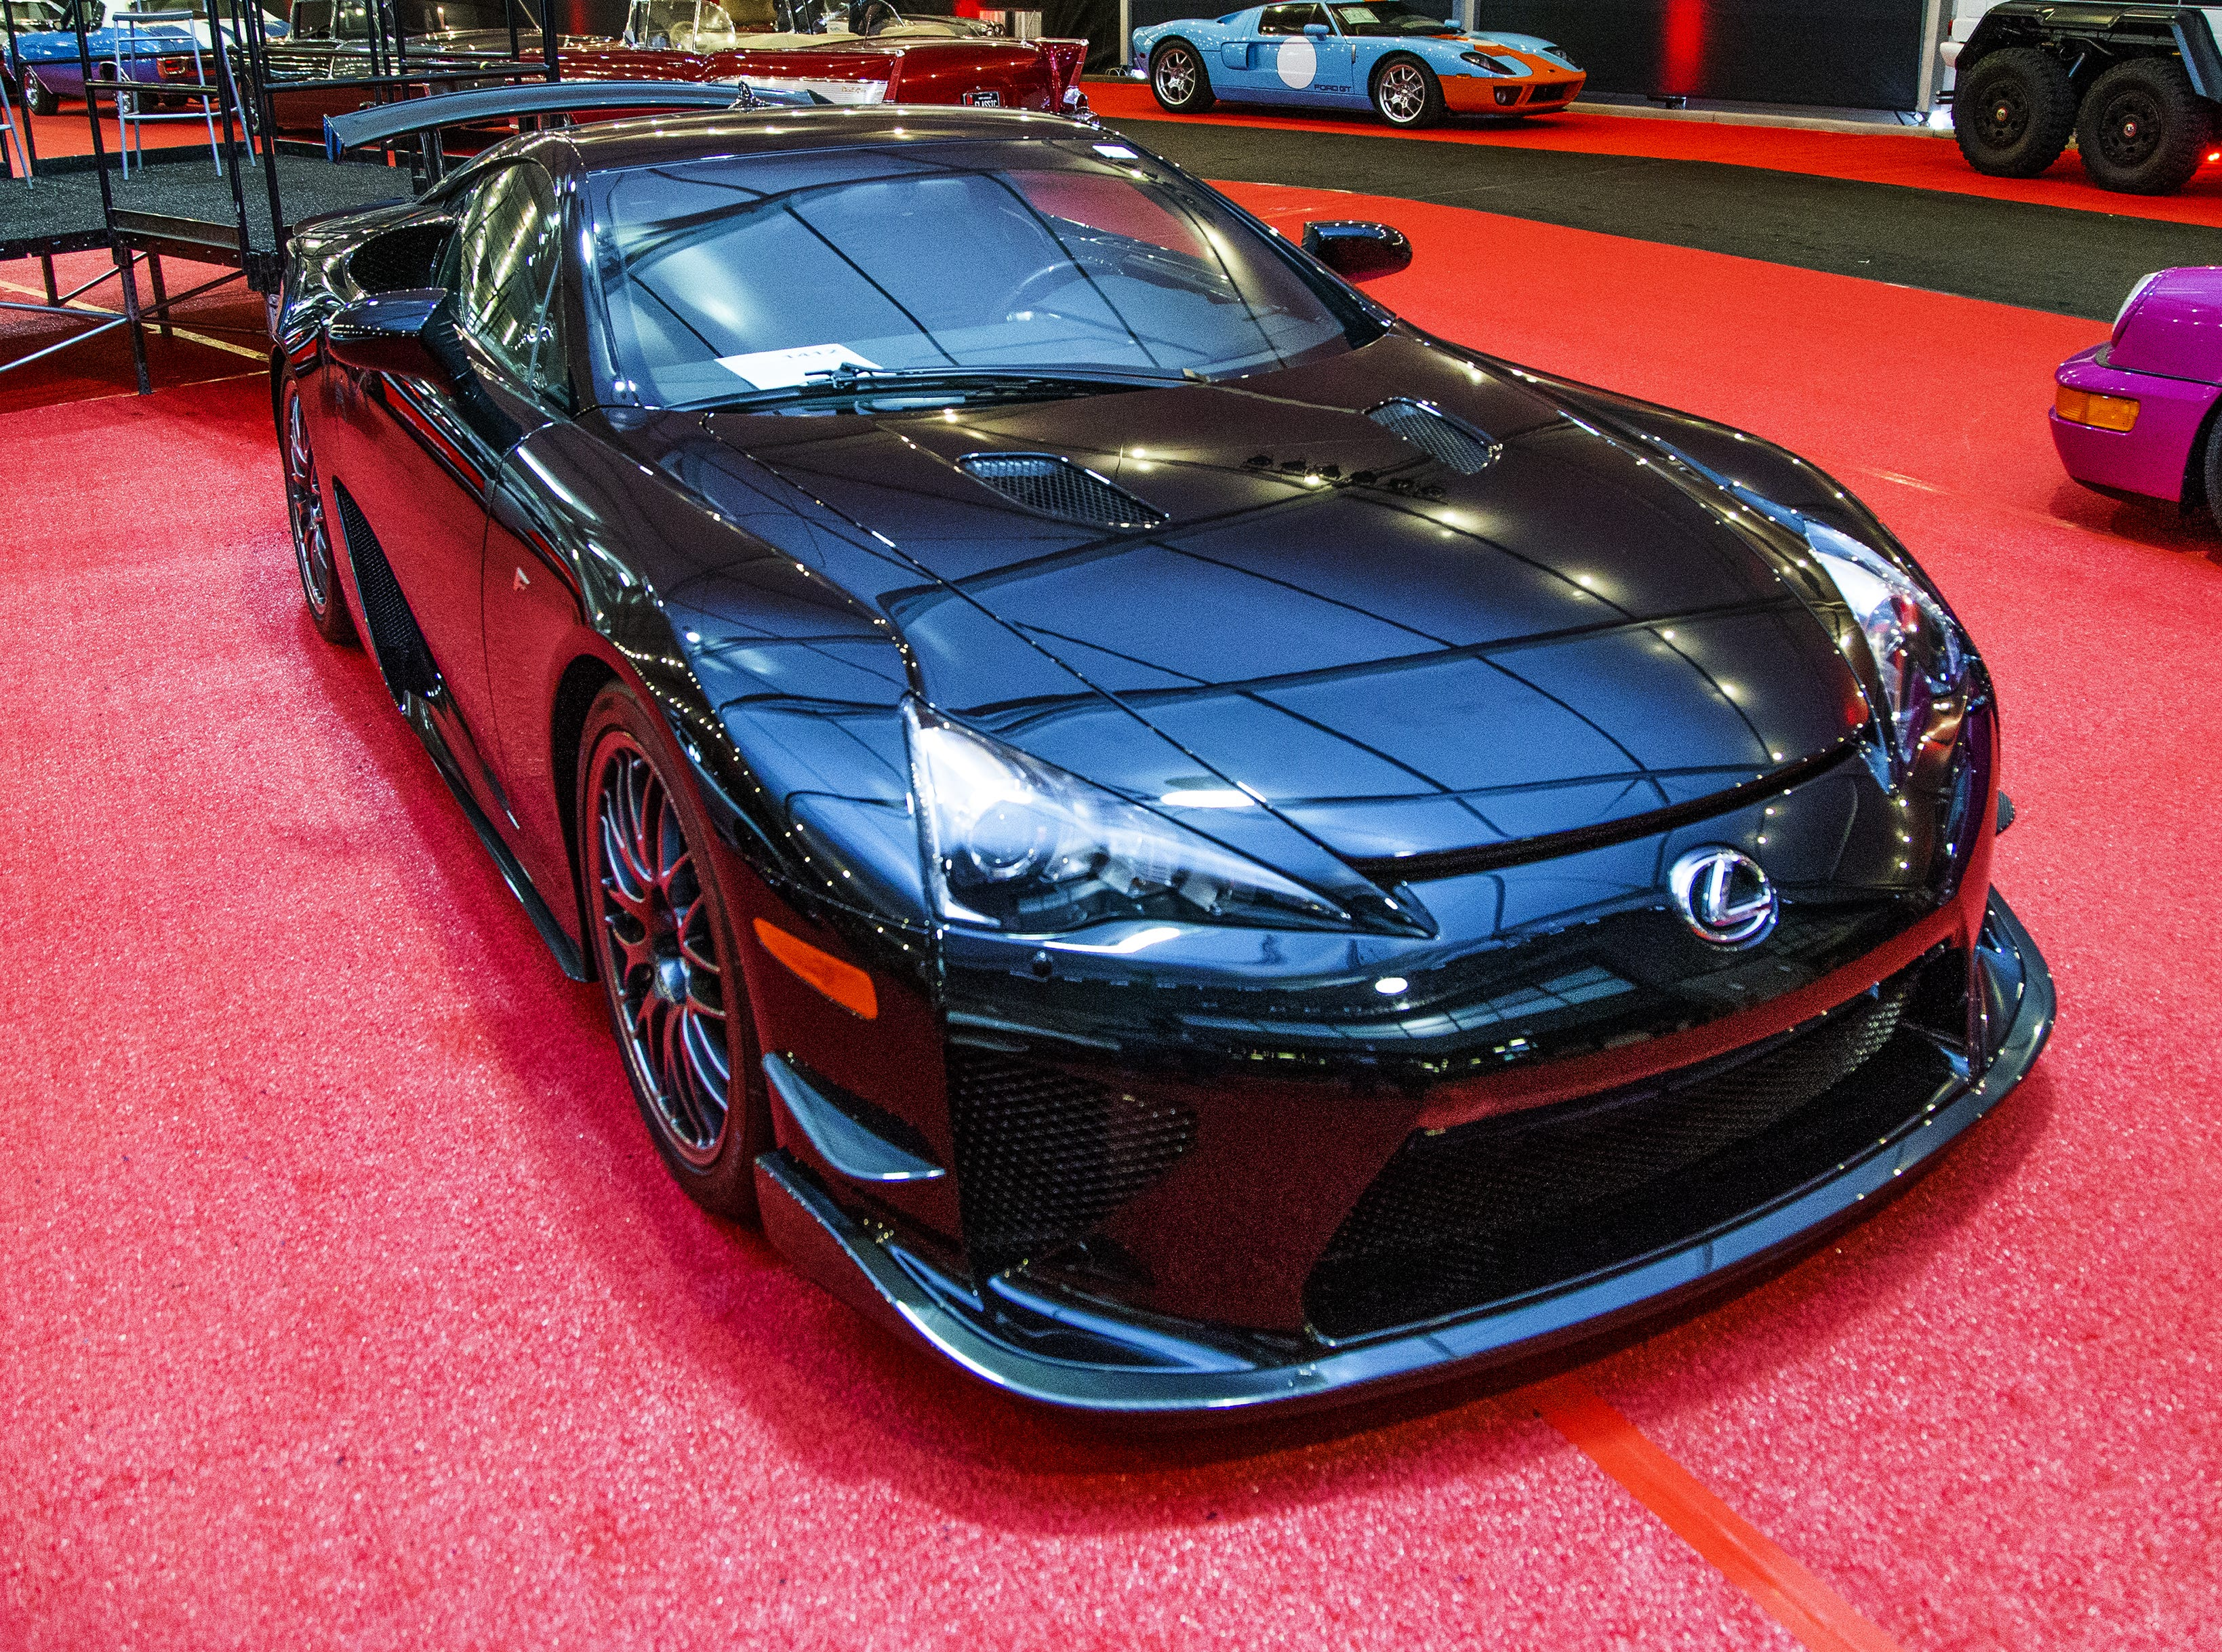 This 2012 Lexus LFA Nurburgring Edition will be auctioned off at the 48th Annual Barrett-Jackson Scottsdale Collector Car Auction, which runs January 12-20 at WestWorld. It is extremely rare.